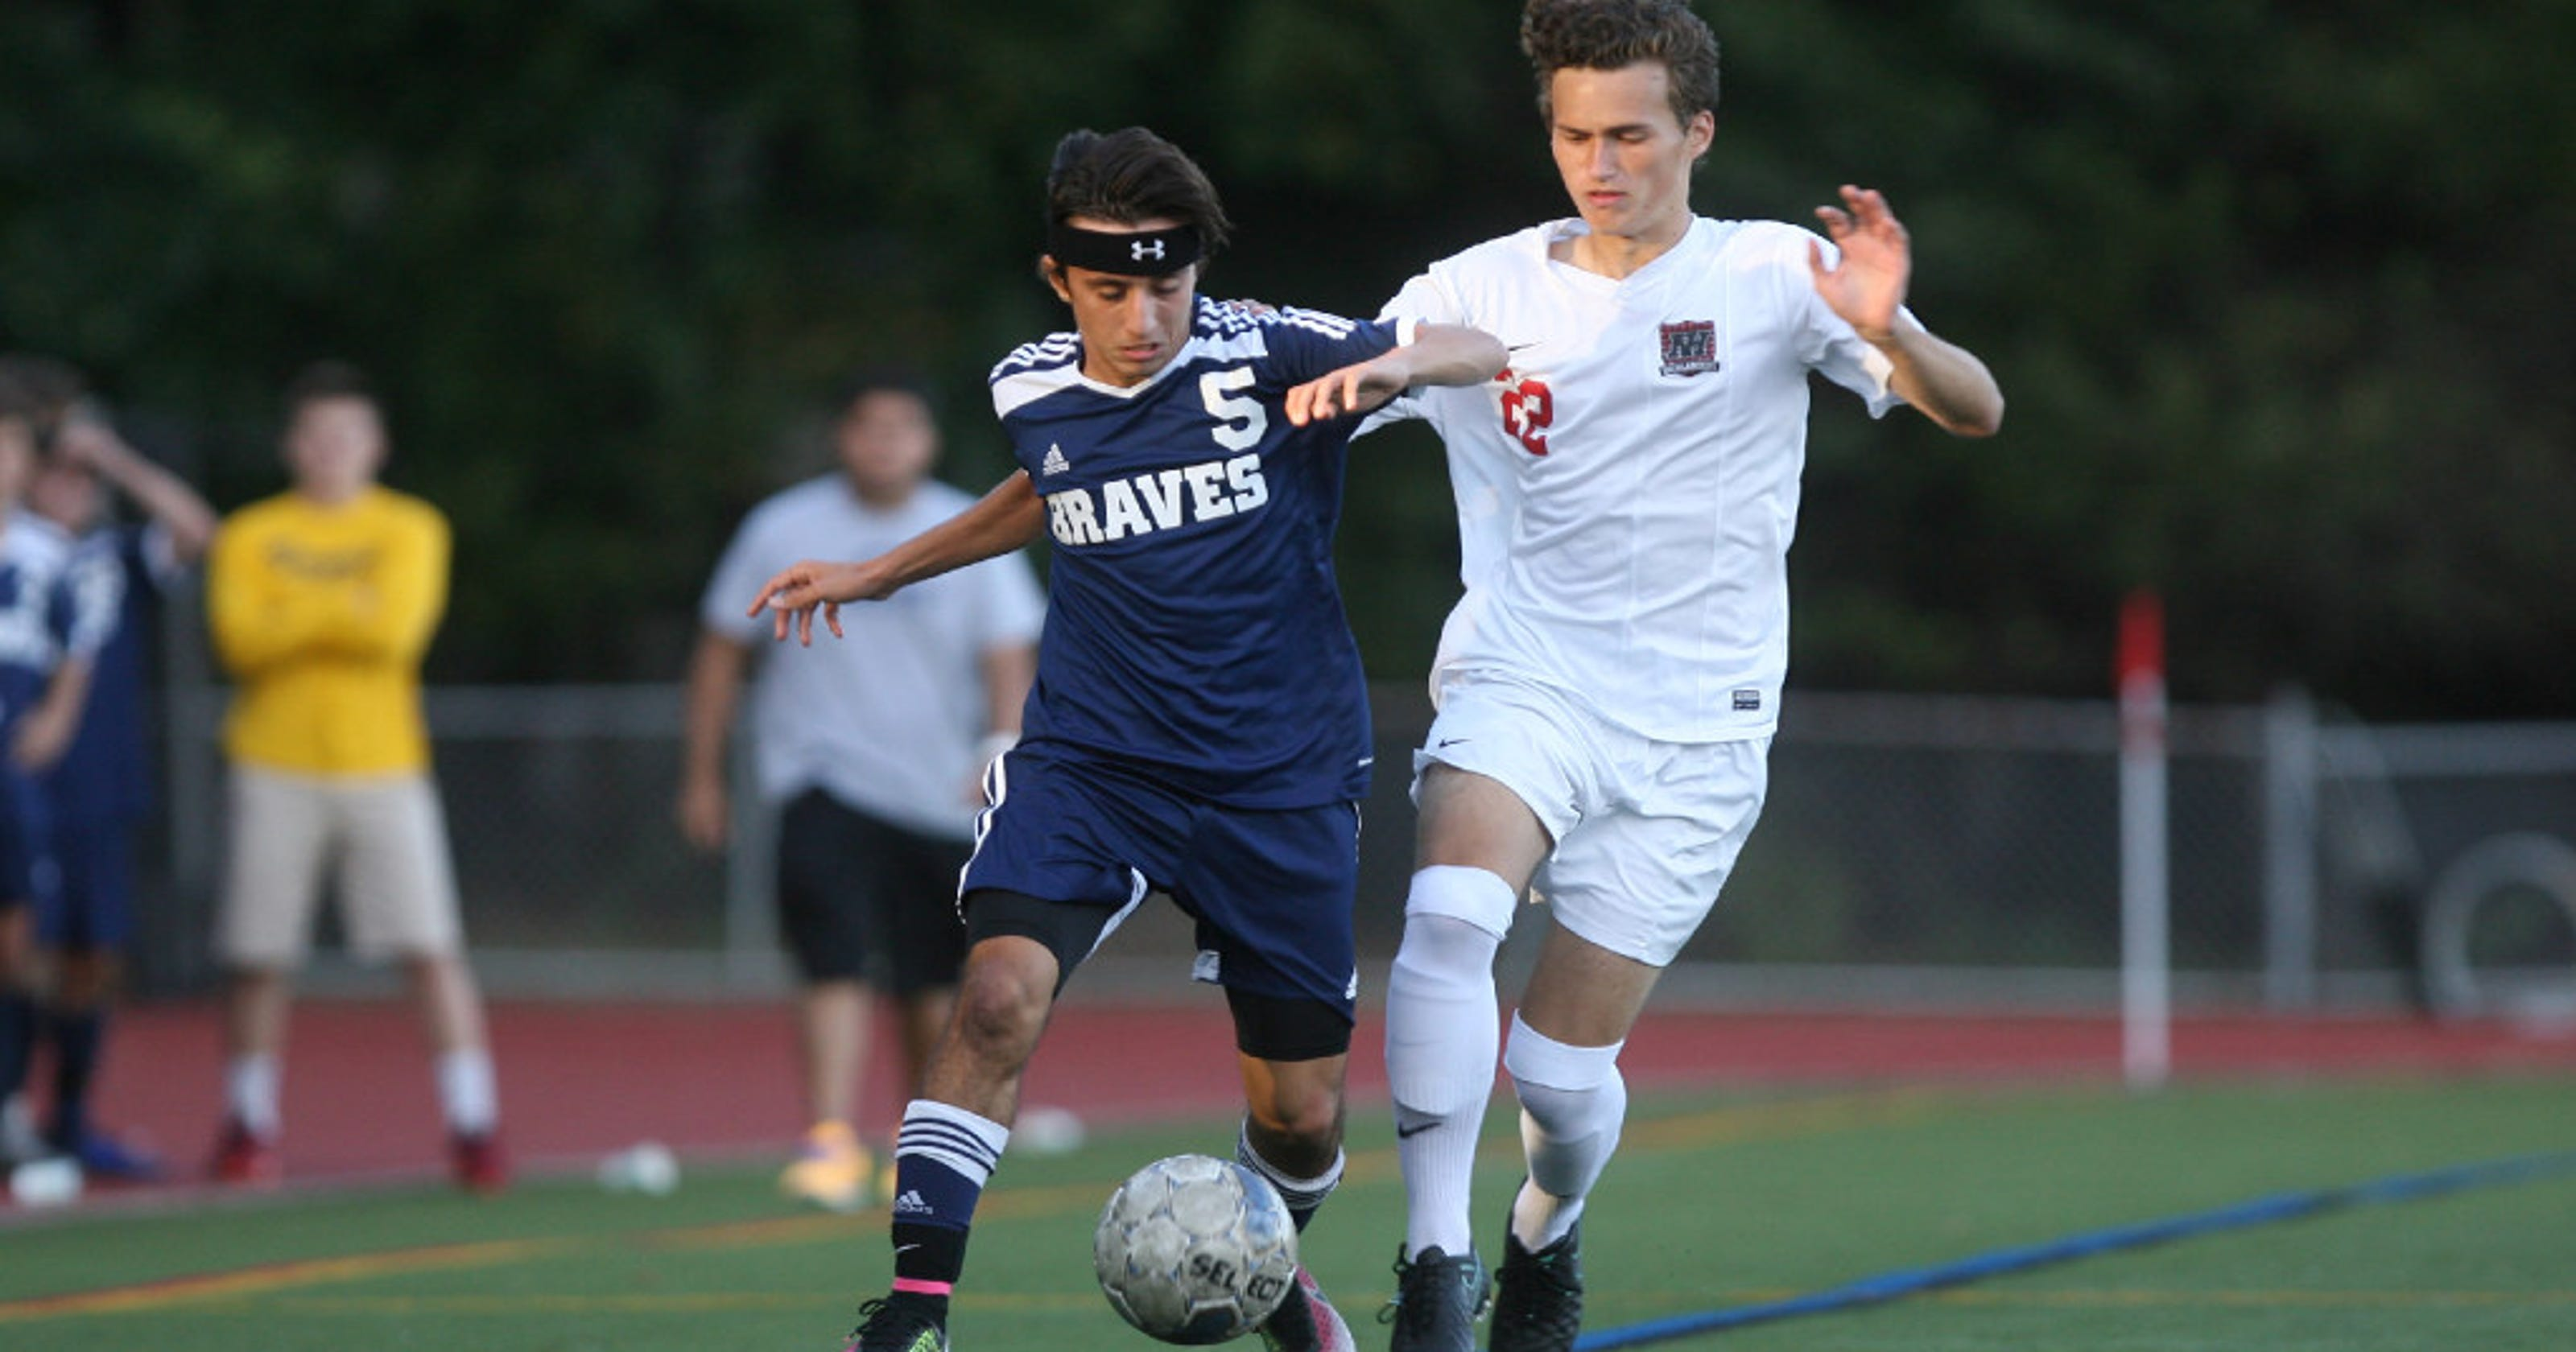 cb65a0e90 State win highlight for Indian Hills boys soccer